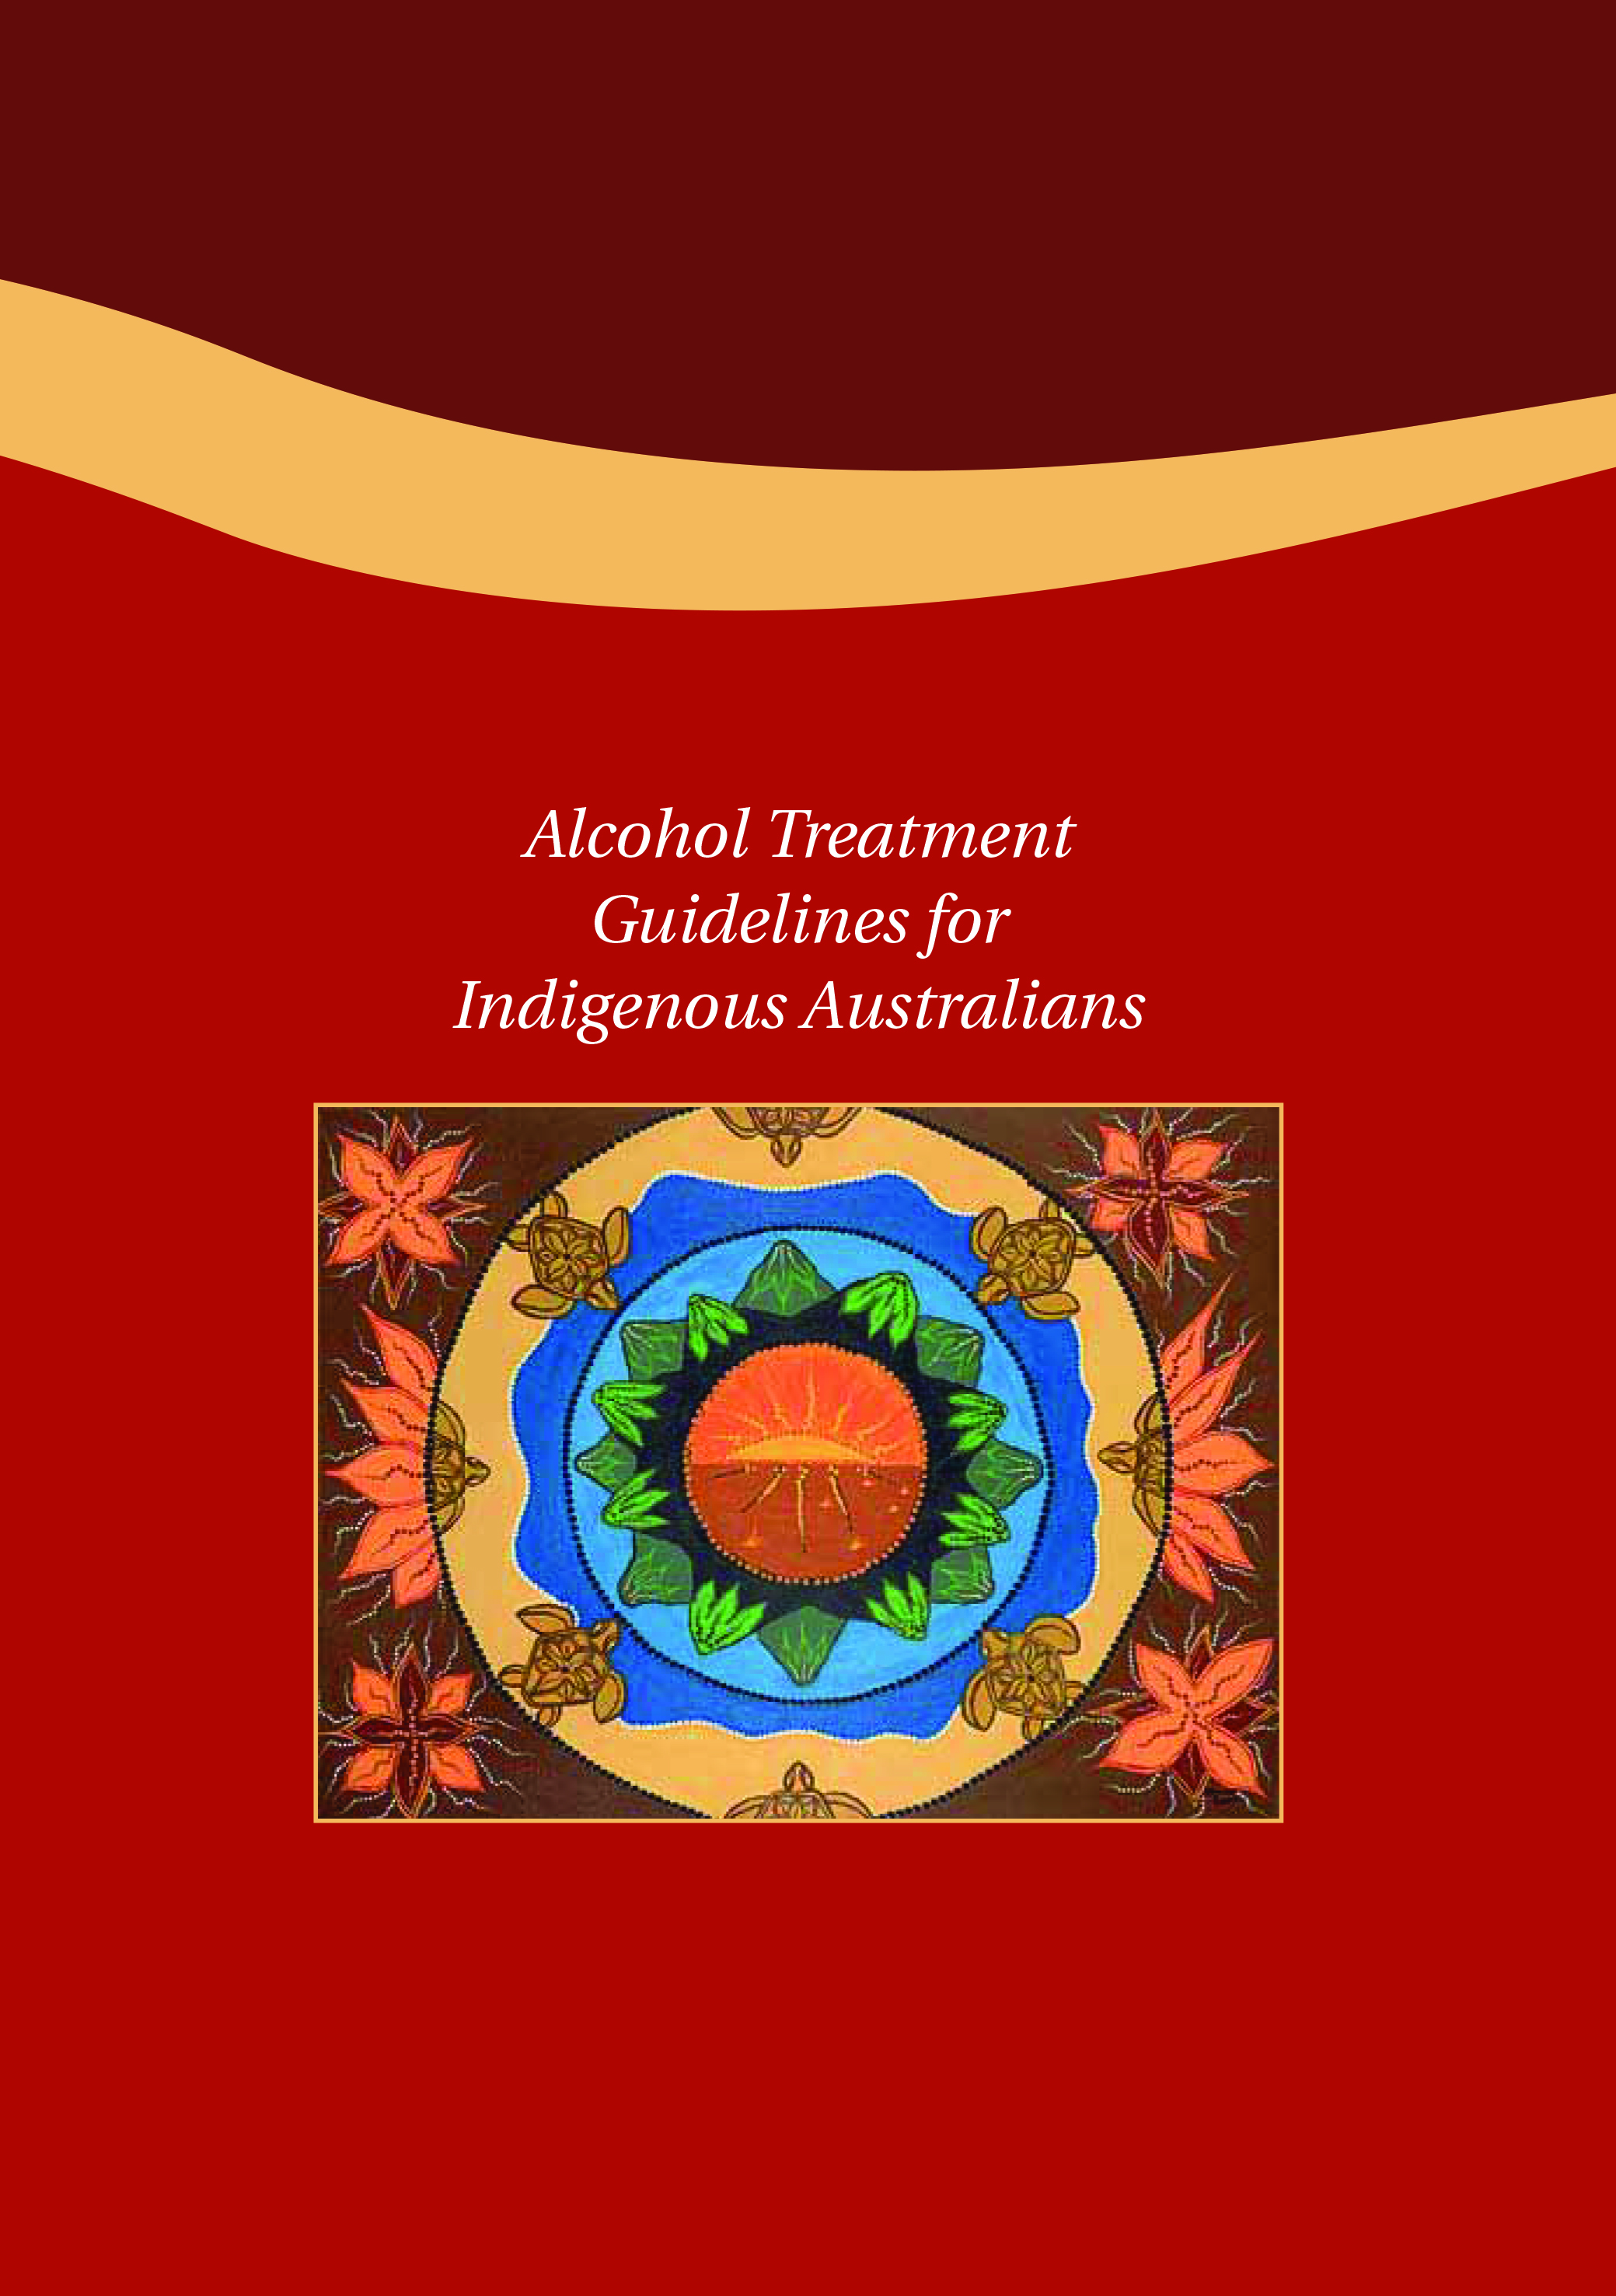 Alcohol Treatment Guidelines for Indigenous Australians - DOHA (2007)